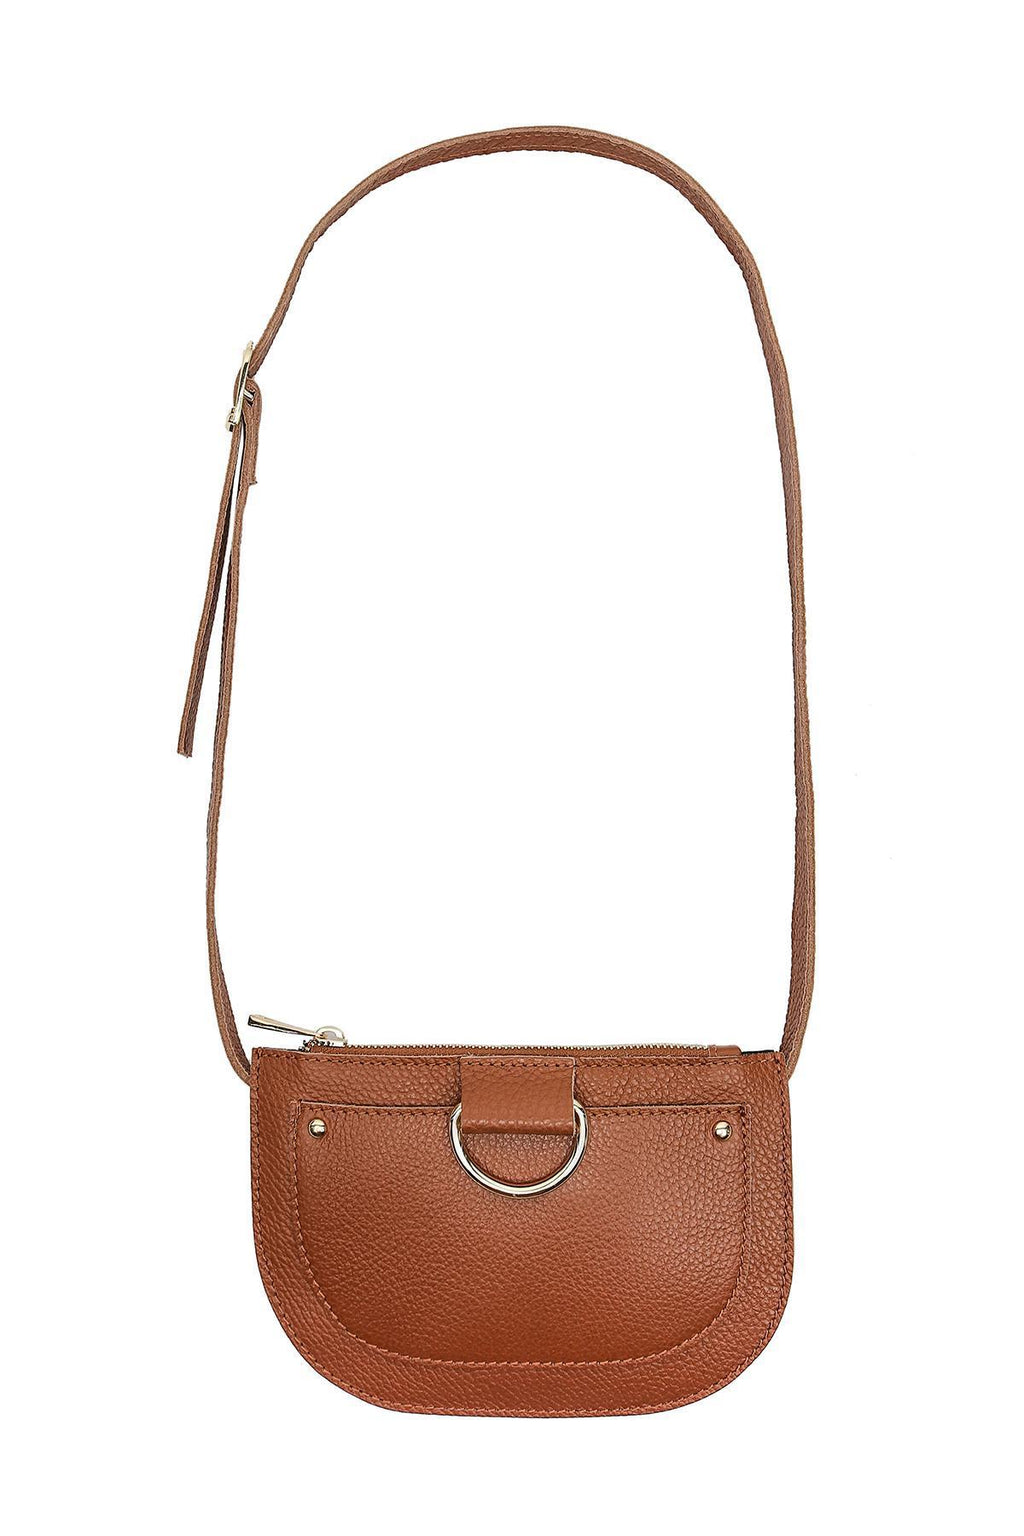 Cherry Paris - Grace bum bag cognac